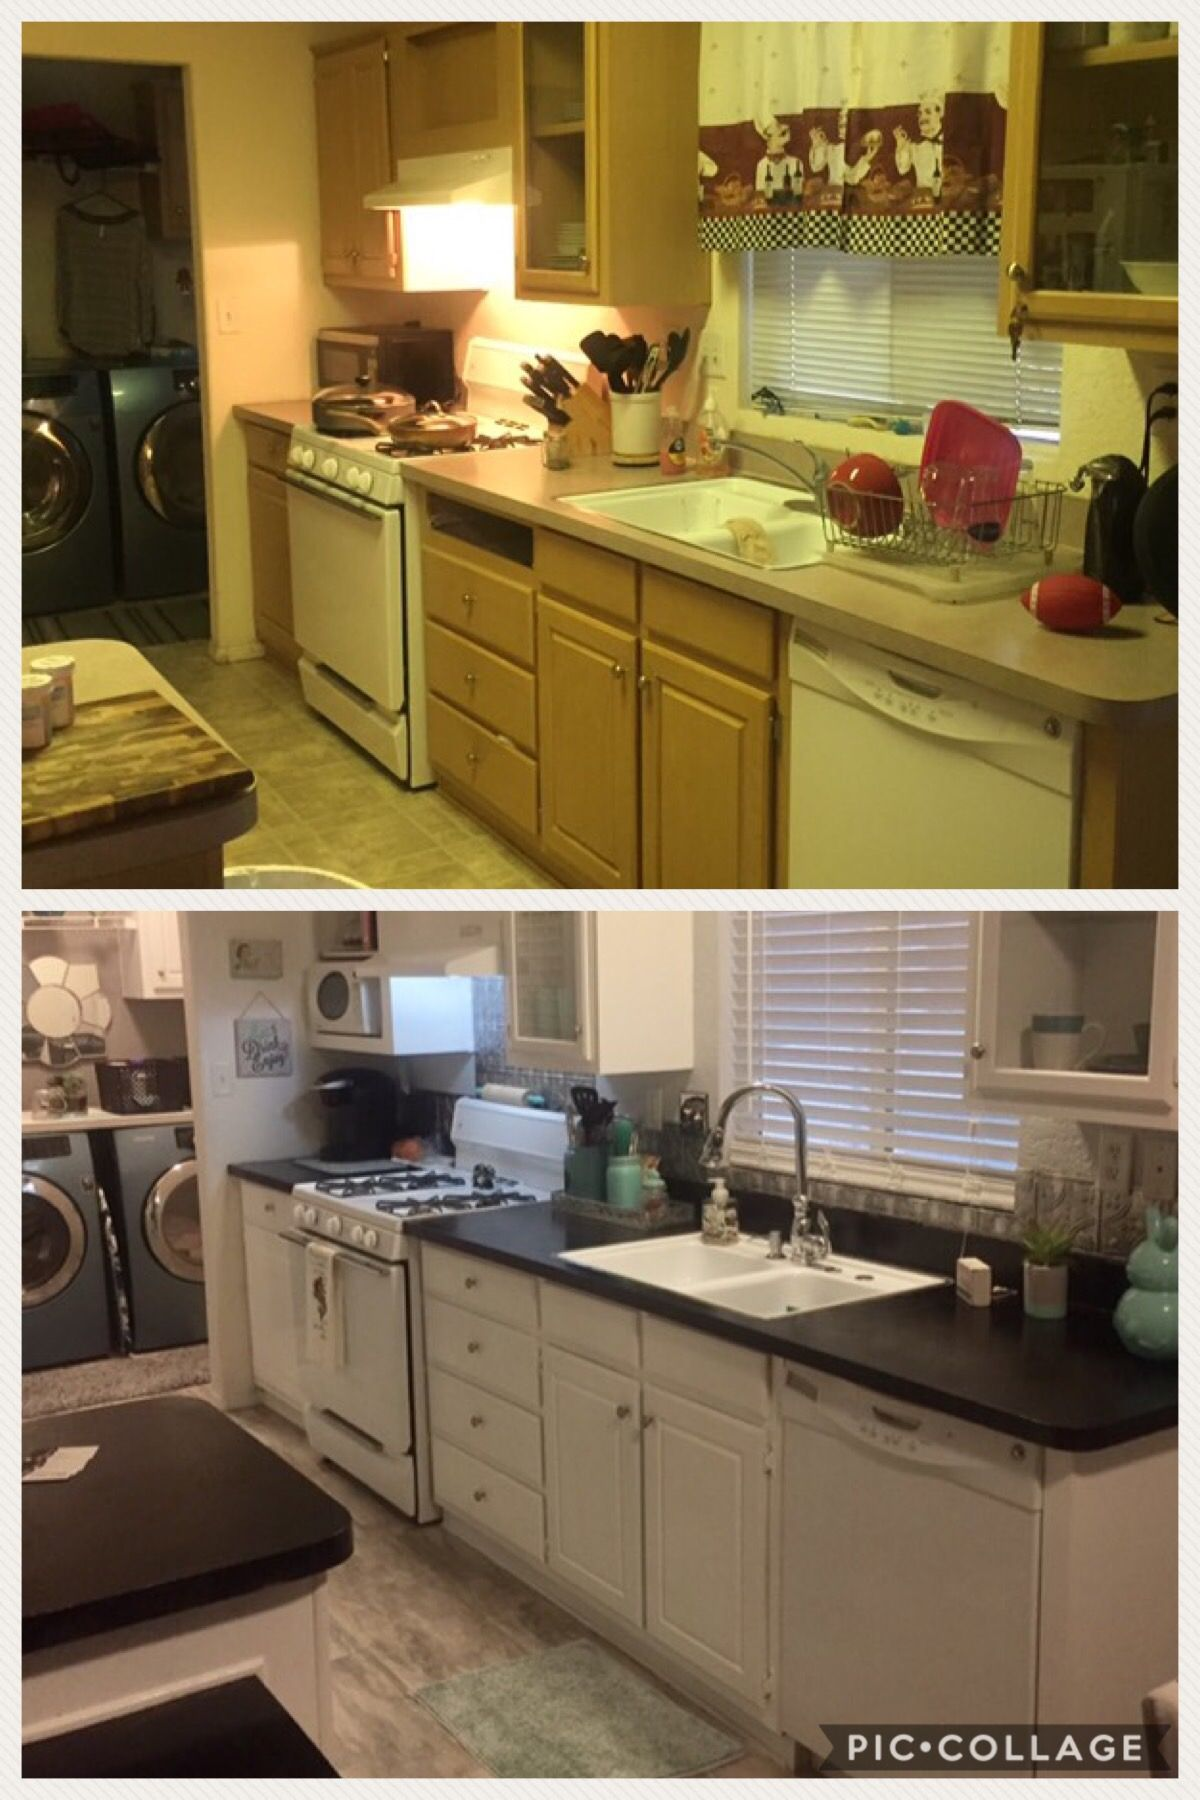 before and after of my Mobile home kitchen make over ... on painting mobile home porch, painting mobile home interior, painting mobile home floors, painting mobile home black, painting mobile home doors, painting mobile home roof,